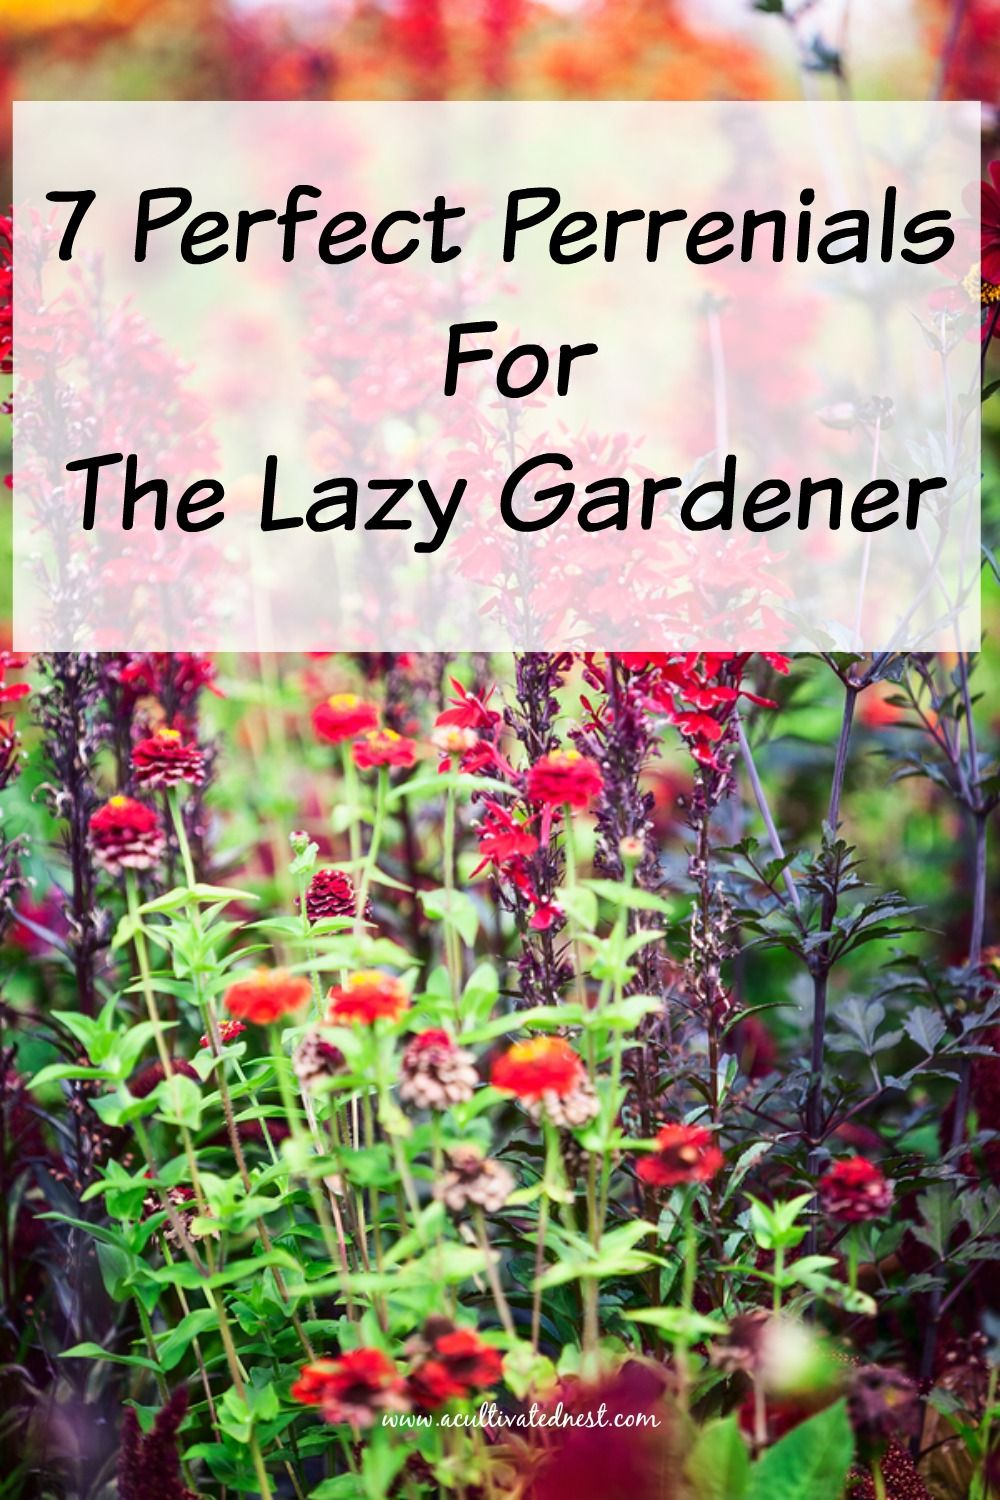 7 Perfect Perennials for the Lazy Gardener is part of Outdoor plants, Perennial garden, Plants, Low maintenance plants, Low maintenance landscaping, Perennials - Just because you don't have a lot of time to garden doesn't mean you can have a beautiful yard! Check out the 7 perfect perennials for the lazy gardener!